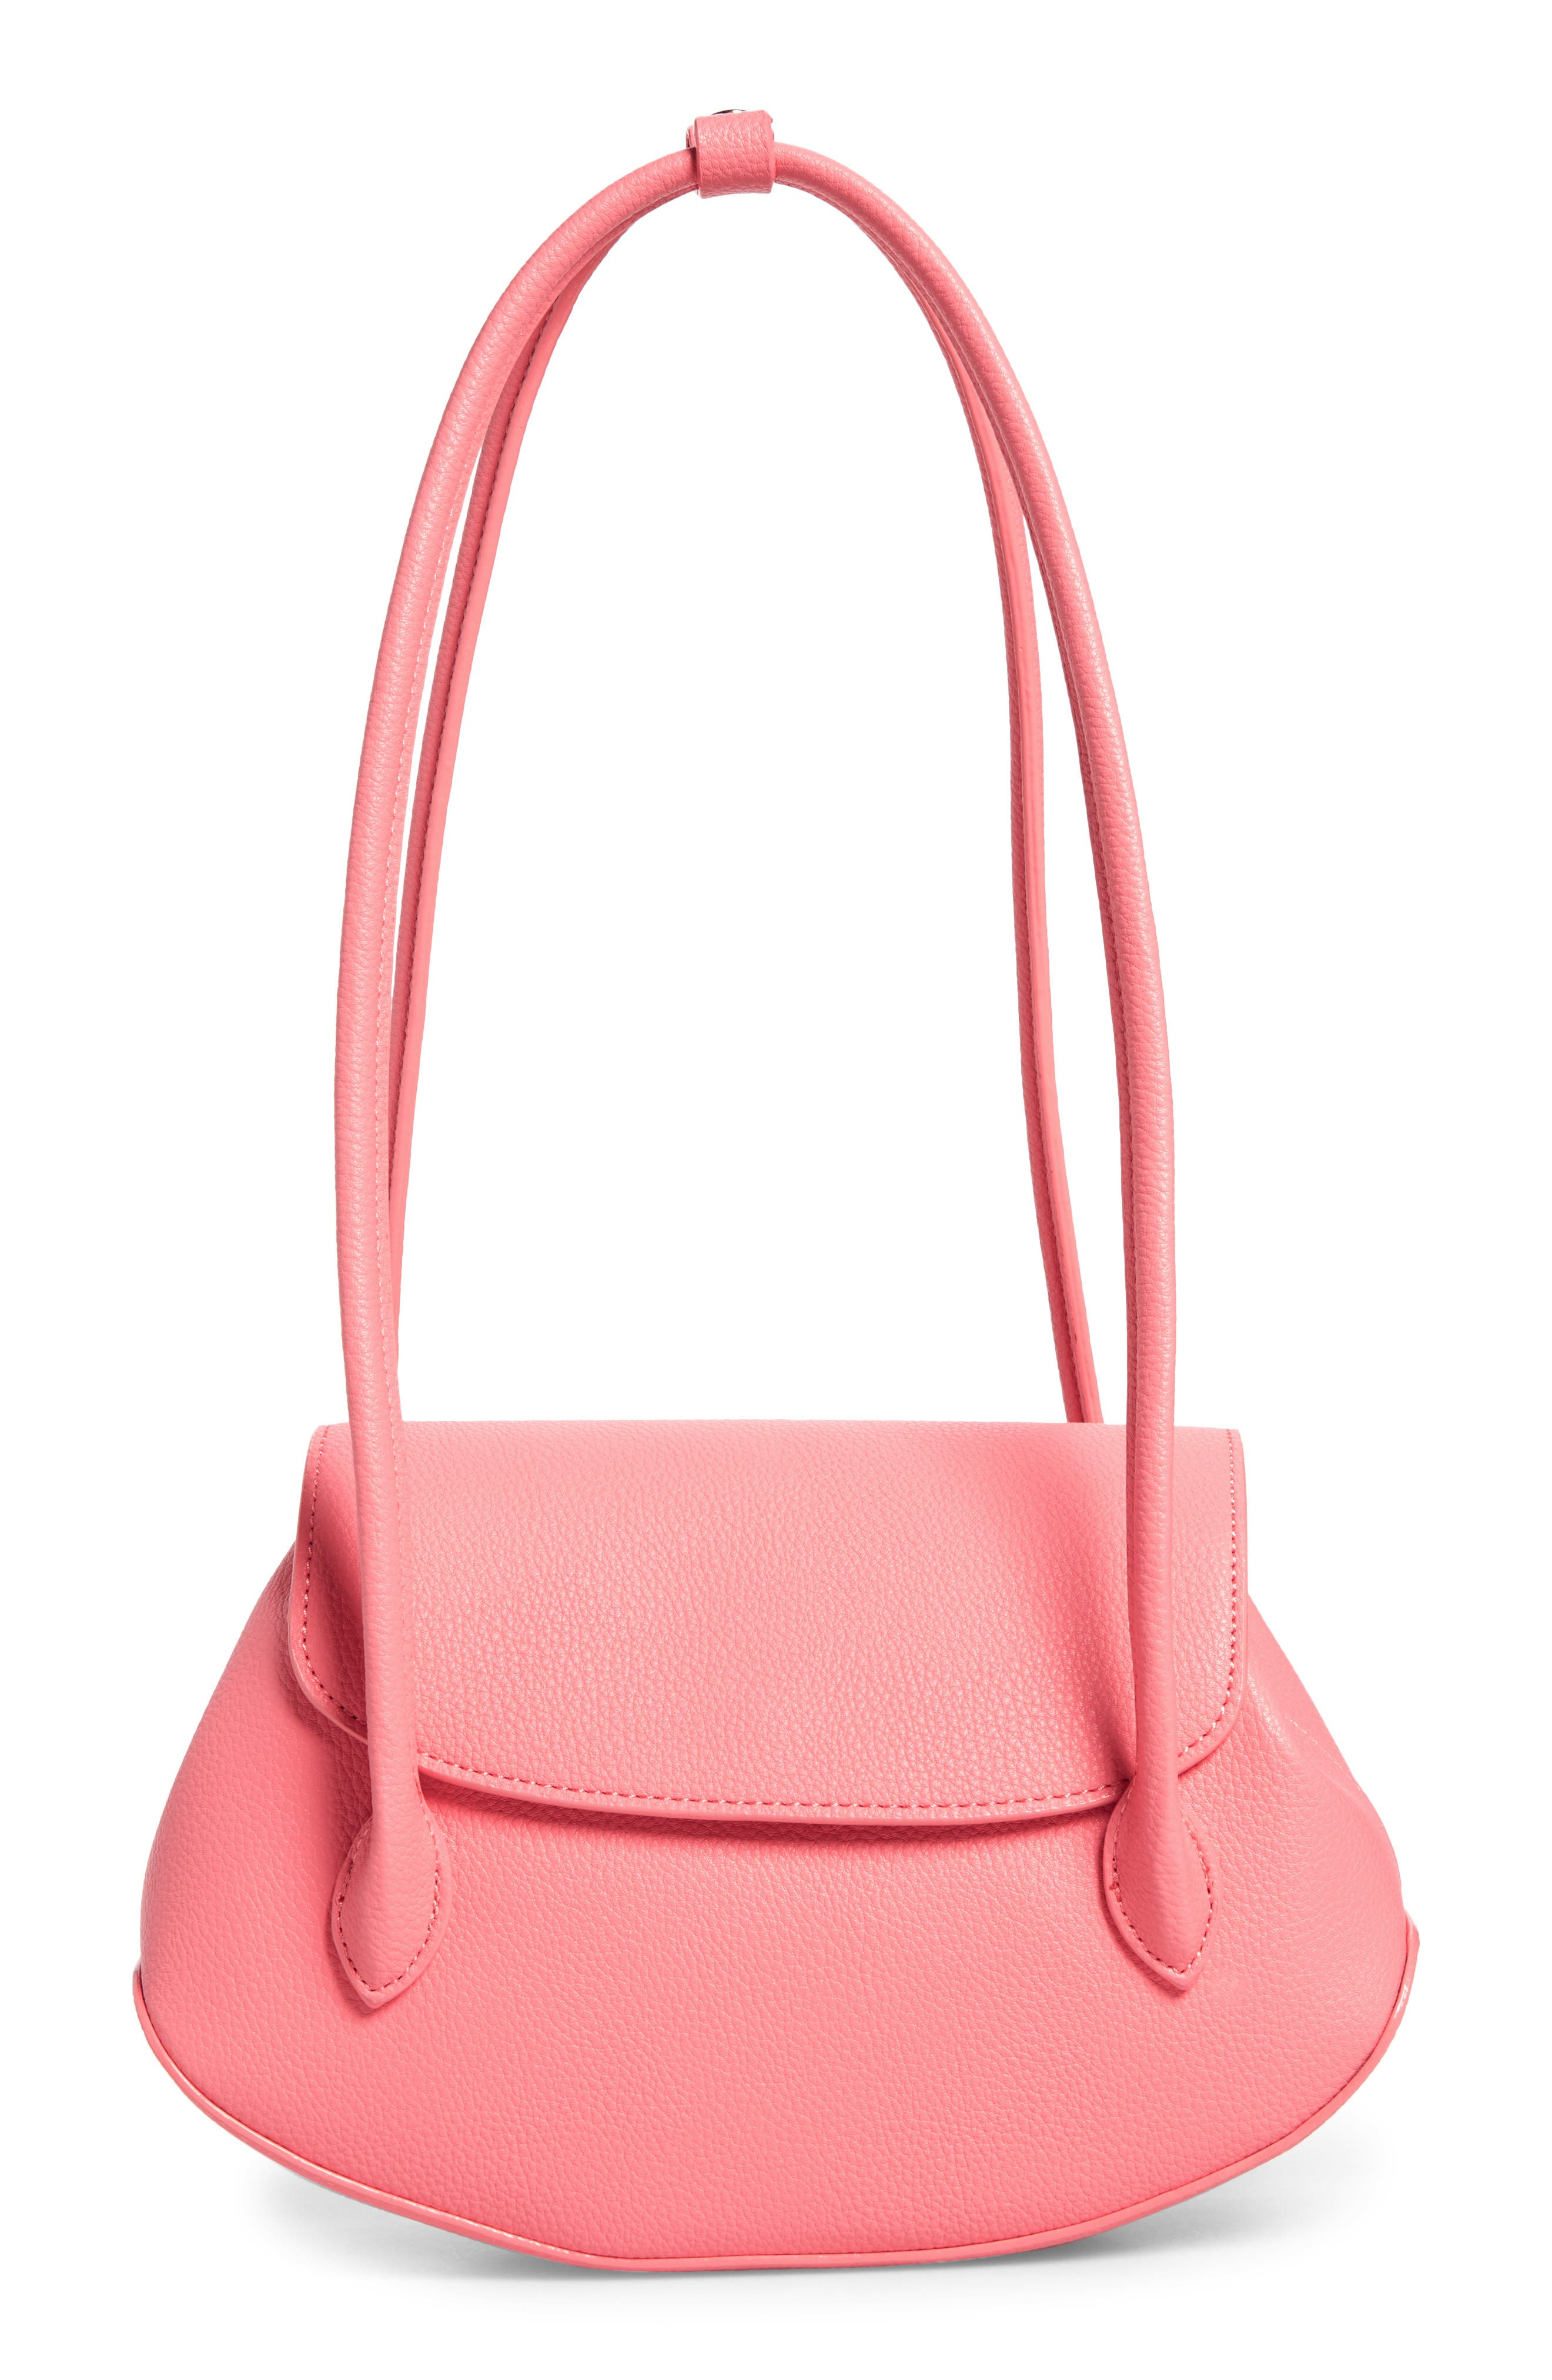 We Are Timeless Small Vegan Leather Shoulder Bag